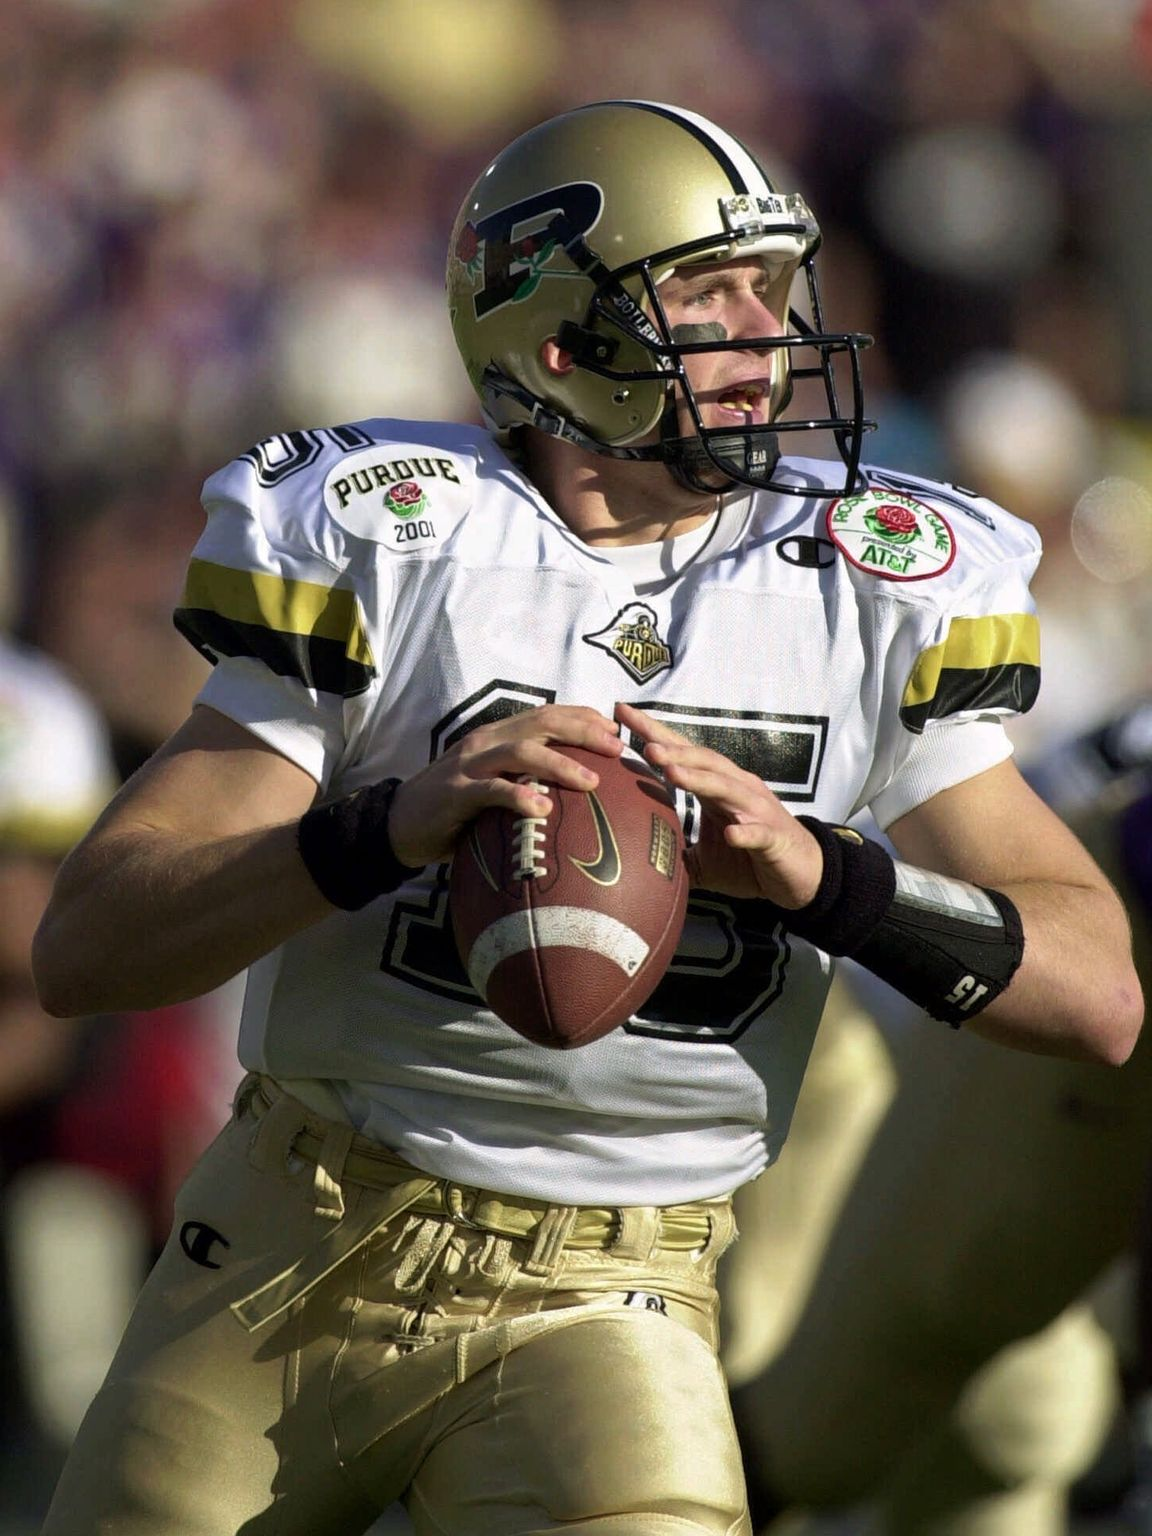 Former Purdue Star Drew Brees Presents Challenge For Colts